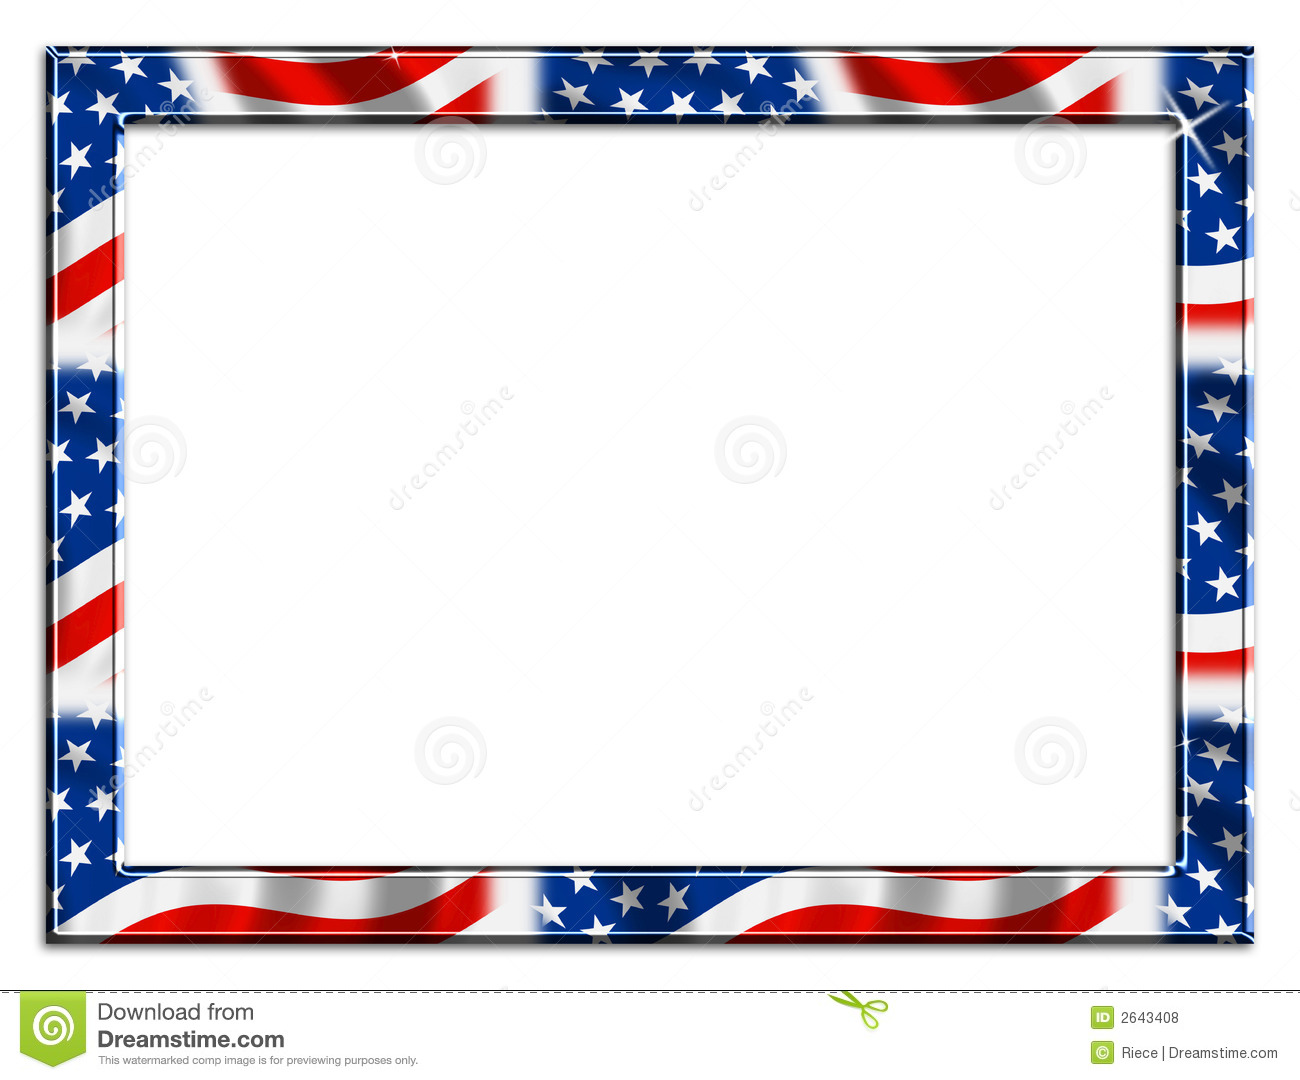 Patriotic red white and blue border beveled frame on white background.